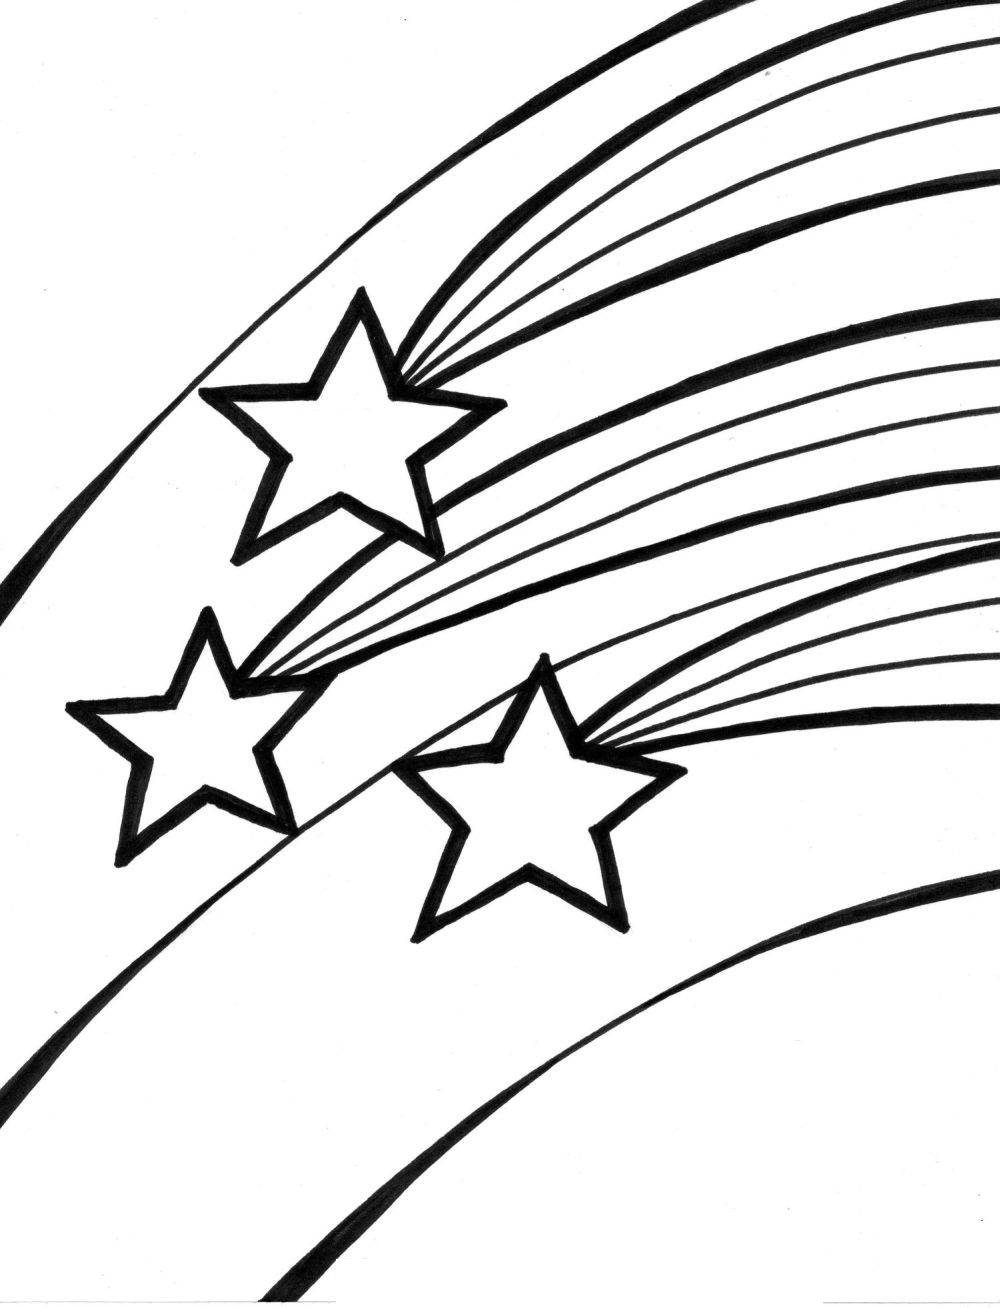 colouring pages of stars free printable star coloring pages for kids pages stars colouring of